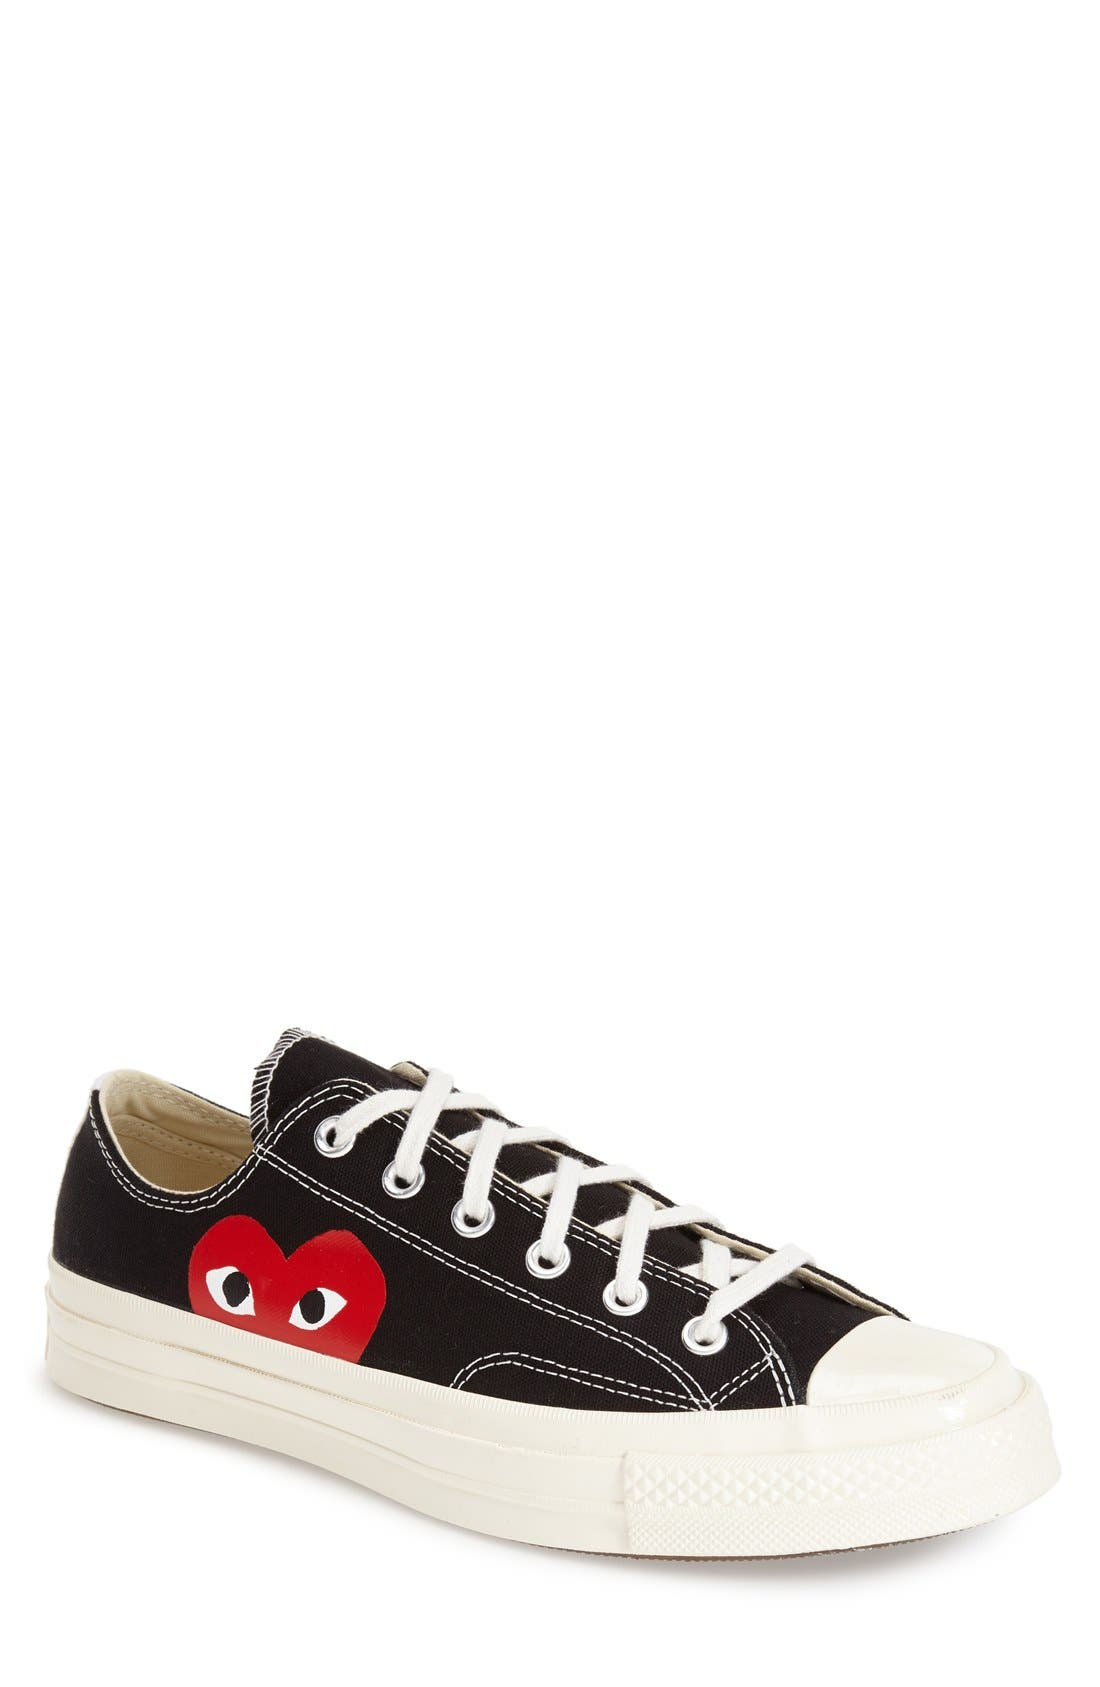 cdg converse black heart